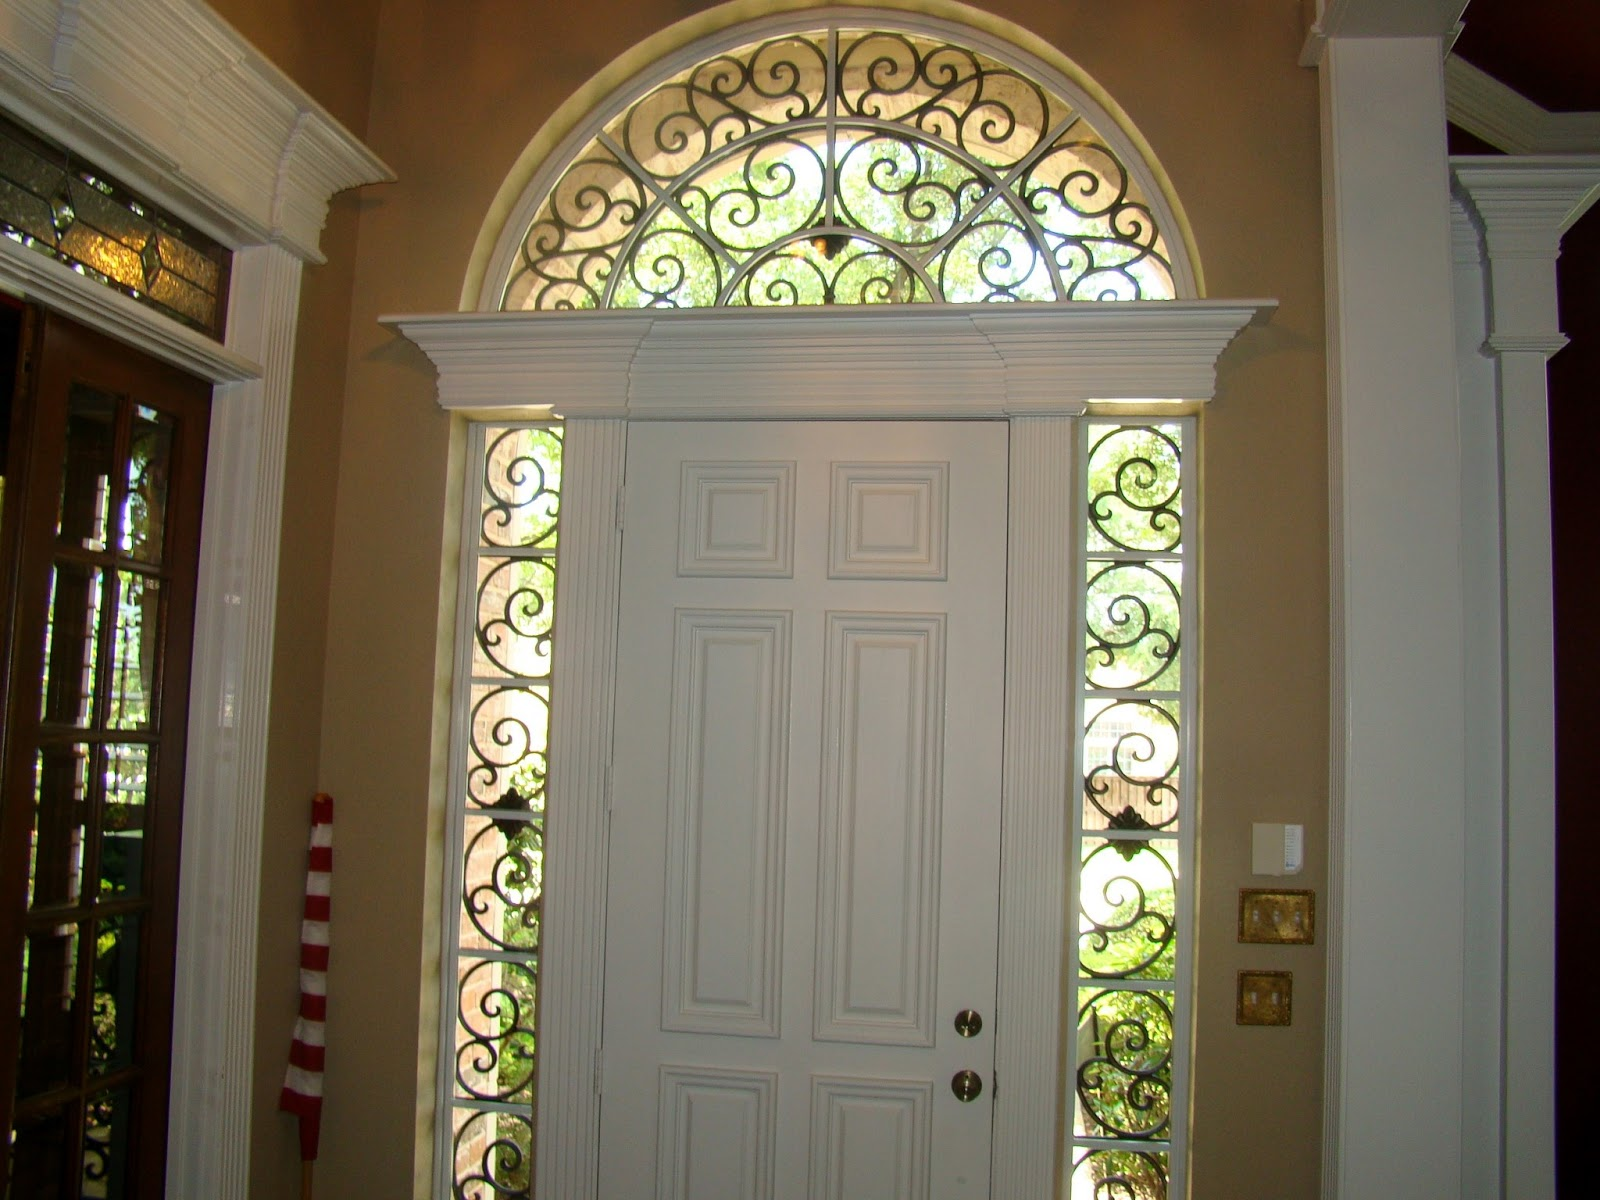 Avenue window fashions plantation shutters tableaux for Window fashions of texas